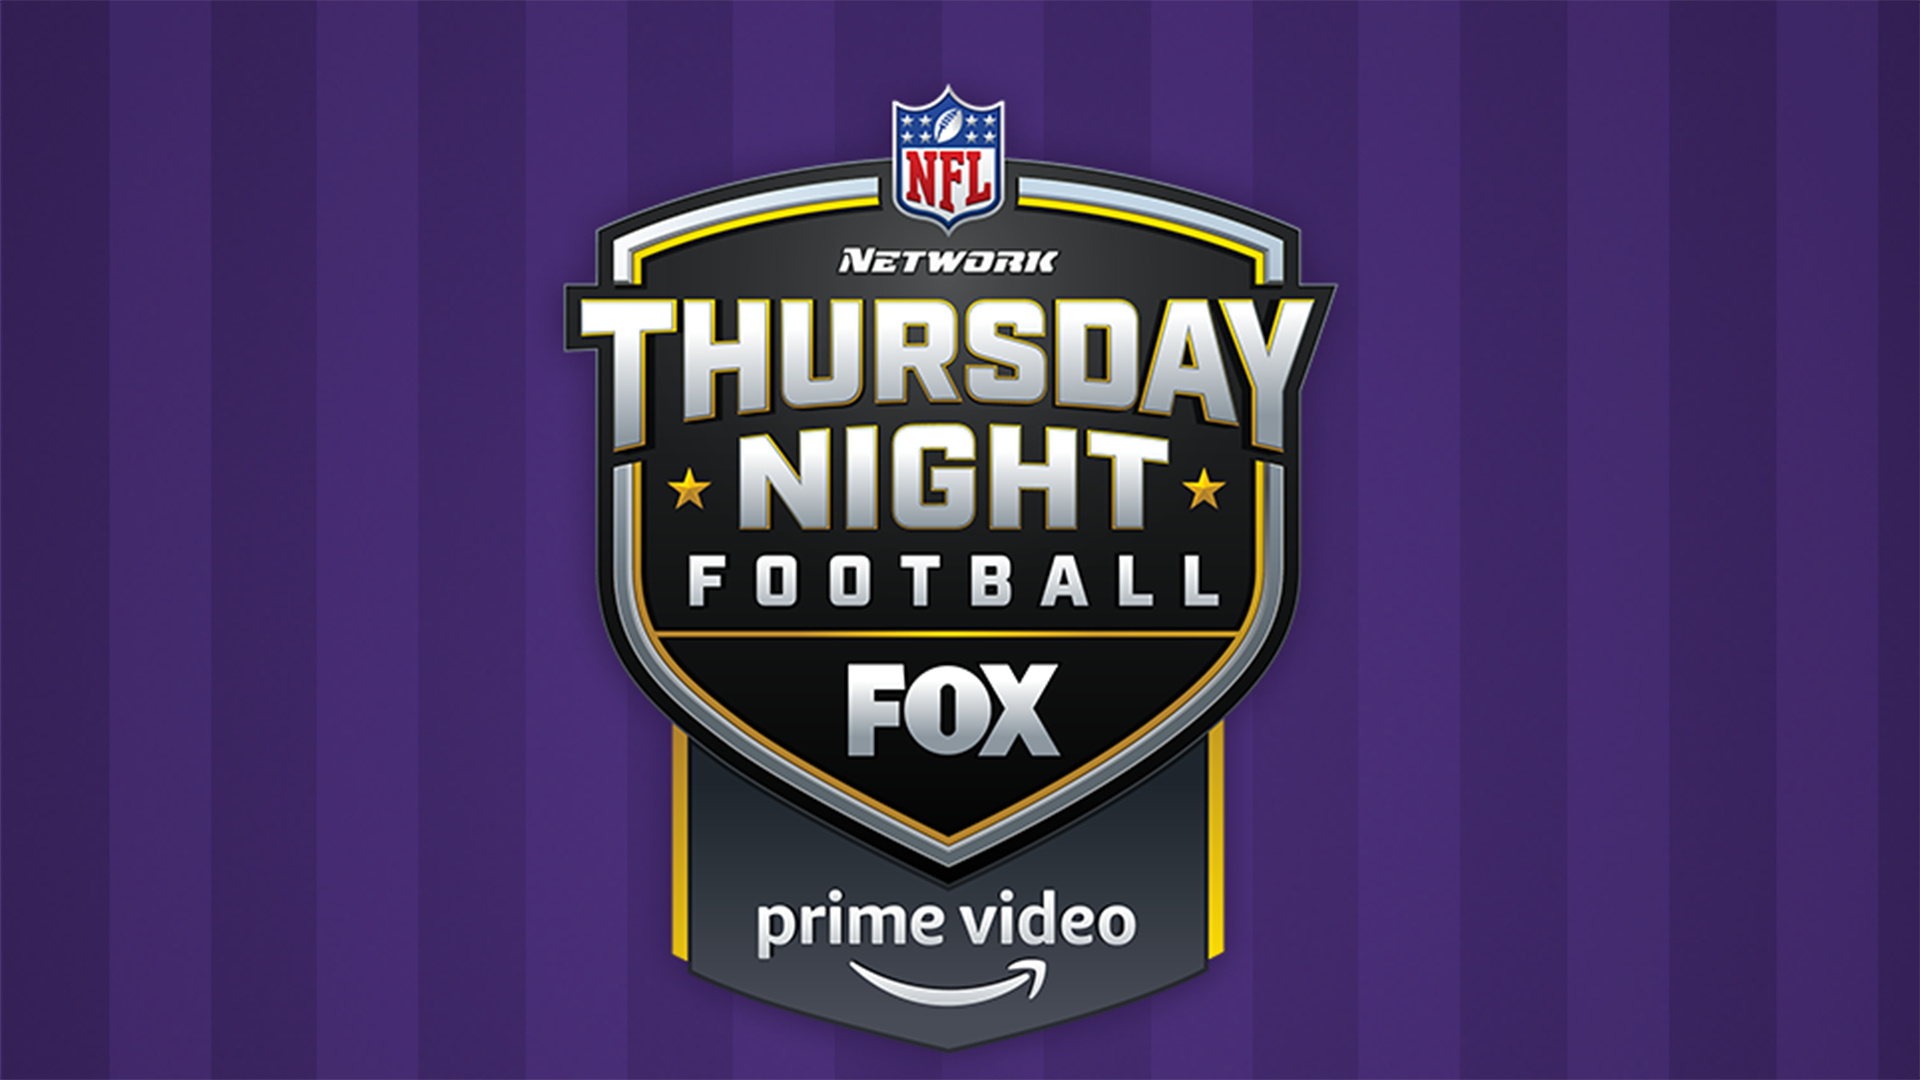 Nfl On Amazon Schedule 2020 How To Watch Thursday Night Football Games On Prime Twitch Sporting News